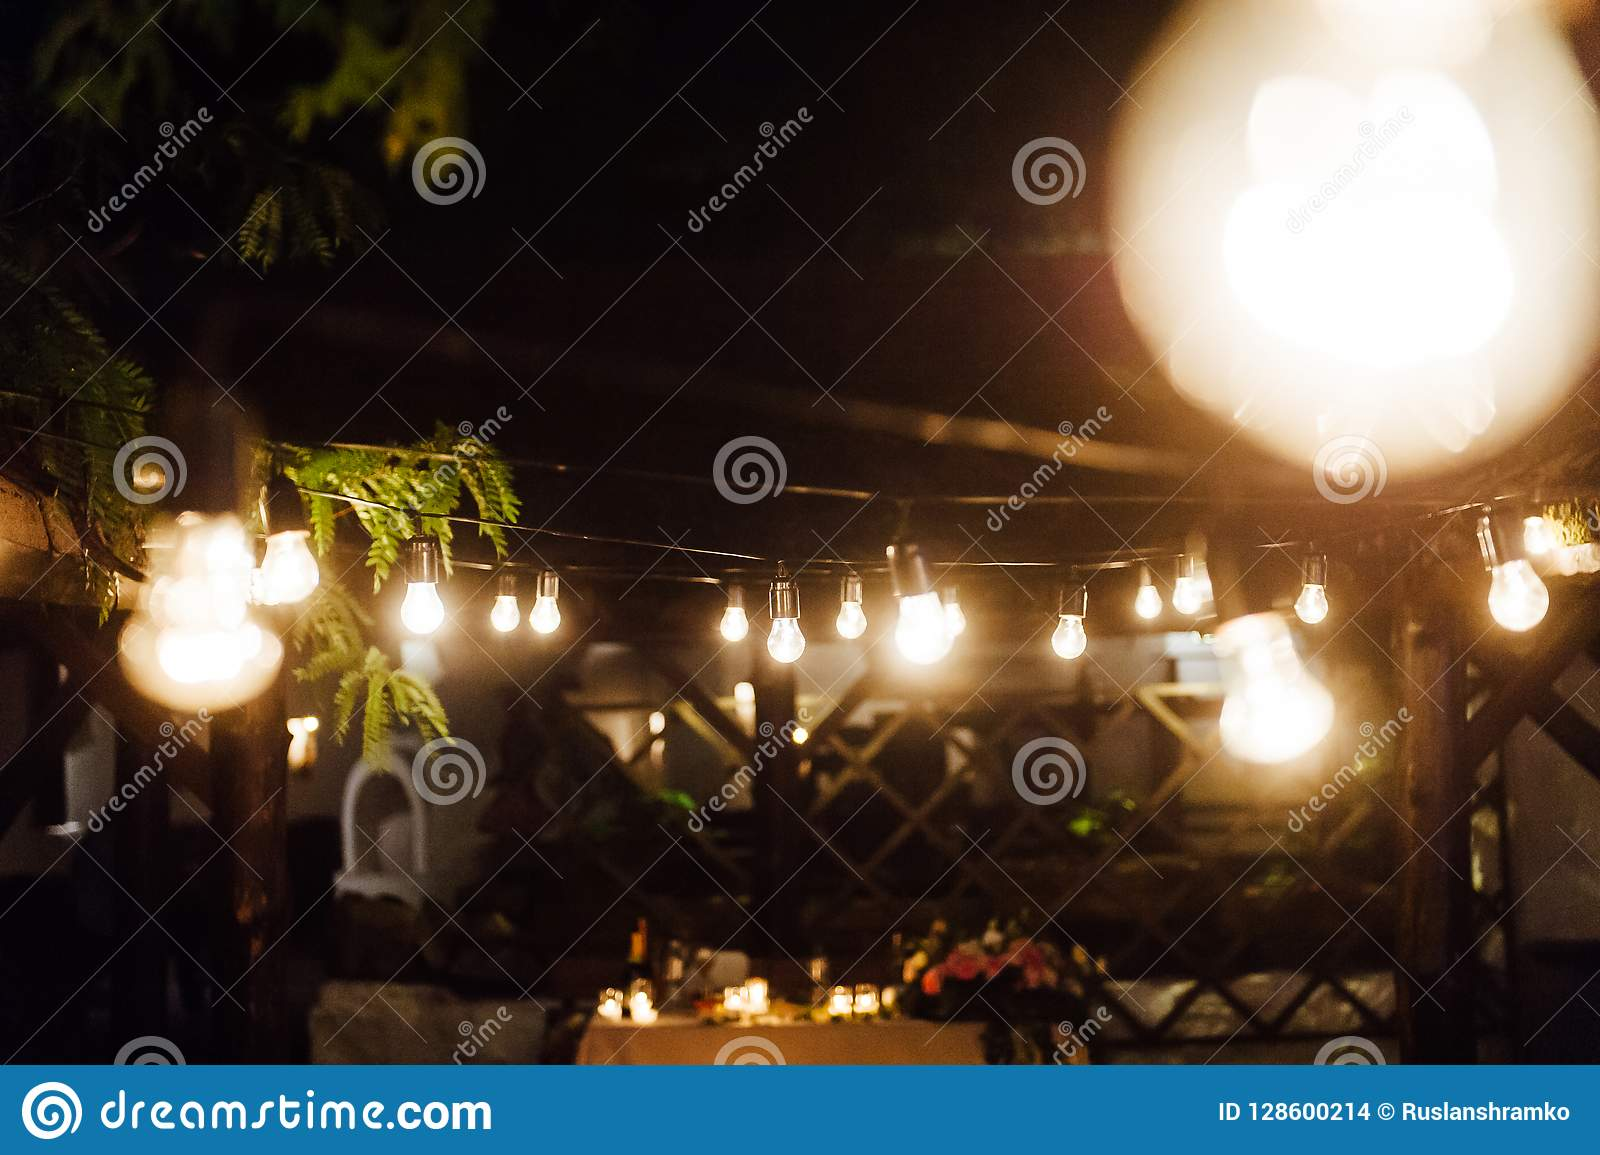 Light Bulb Decor In Outdoor Party Wedding Stock Photo Image Of Festival Illumination 128600214